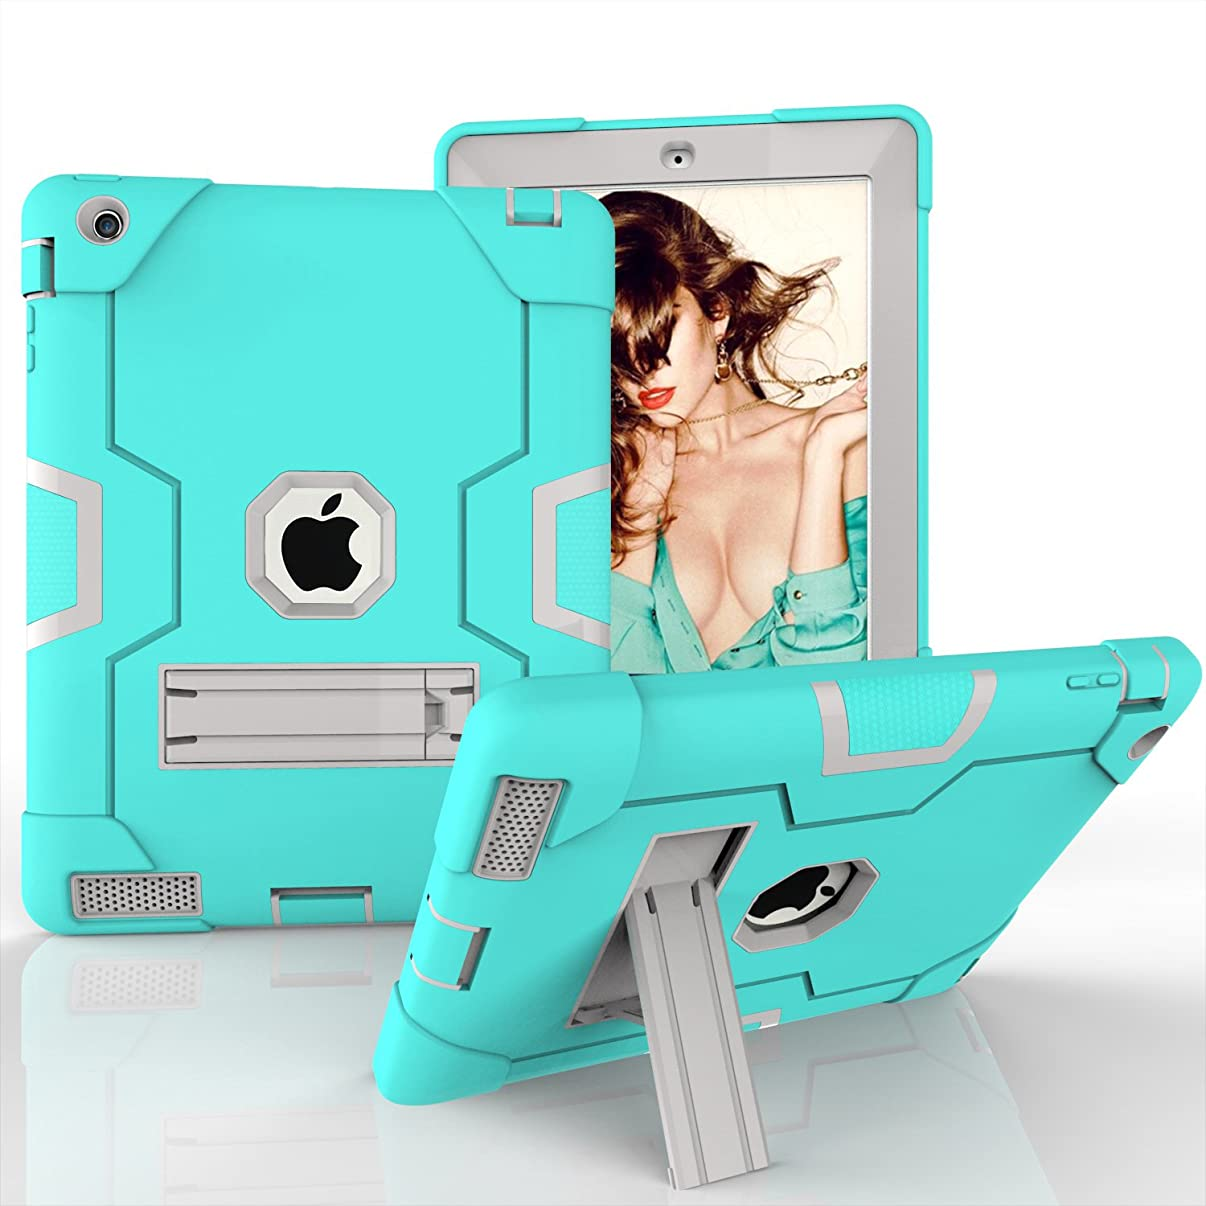 Pad 2 Case, iPad 3 Case, iPad 4 Case, Kickstand Heavy Duty Rugged Shock-Absorption Silicone High Impact Resistant Hybrid Three Layer Armor Defender Protective Case iPad 2/3/4